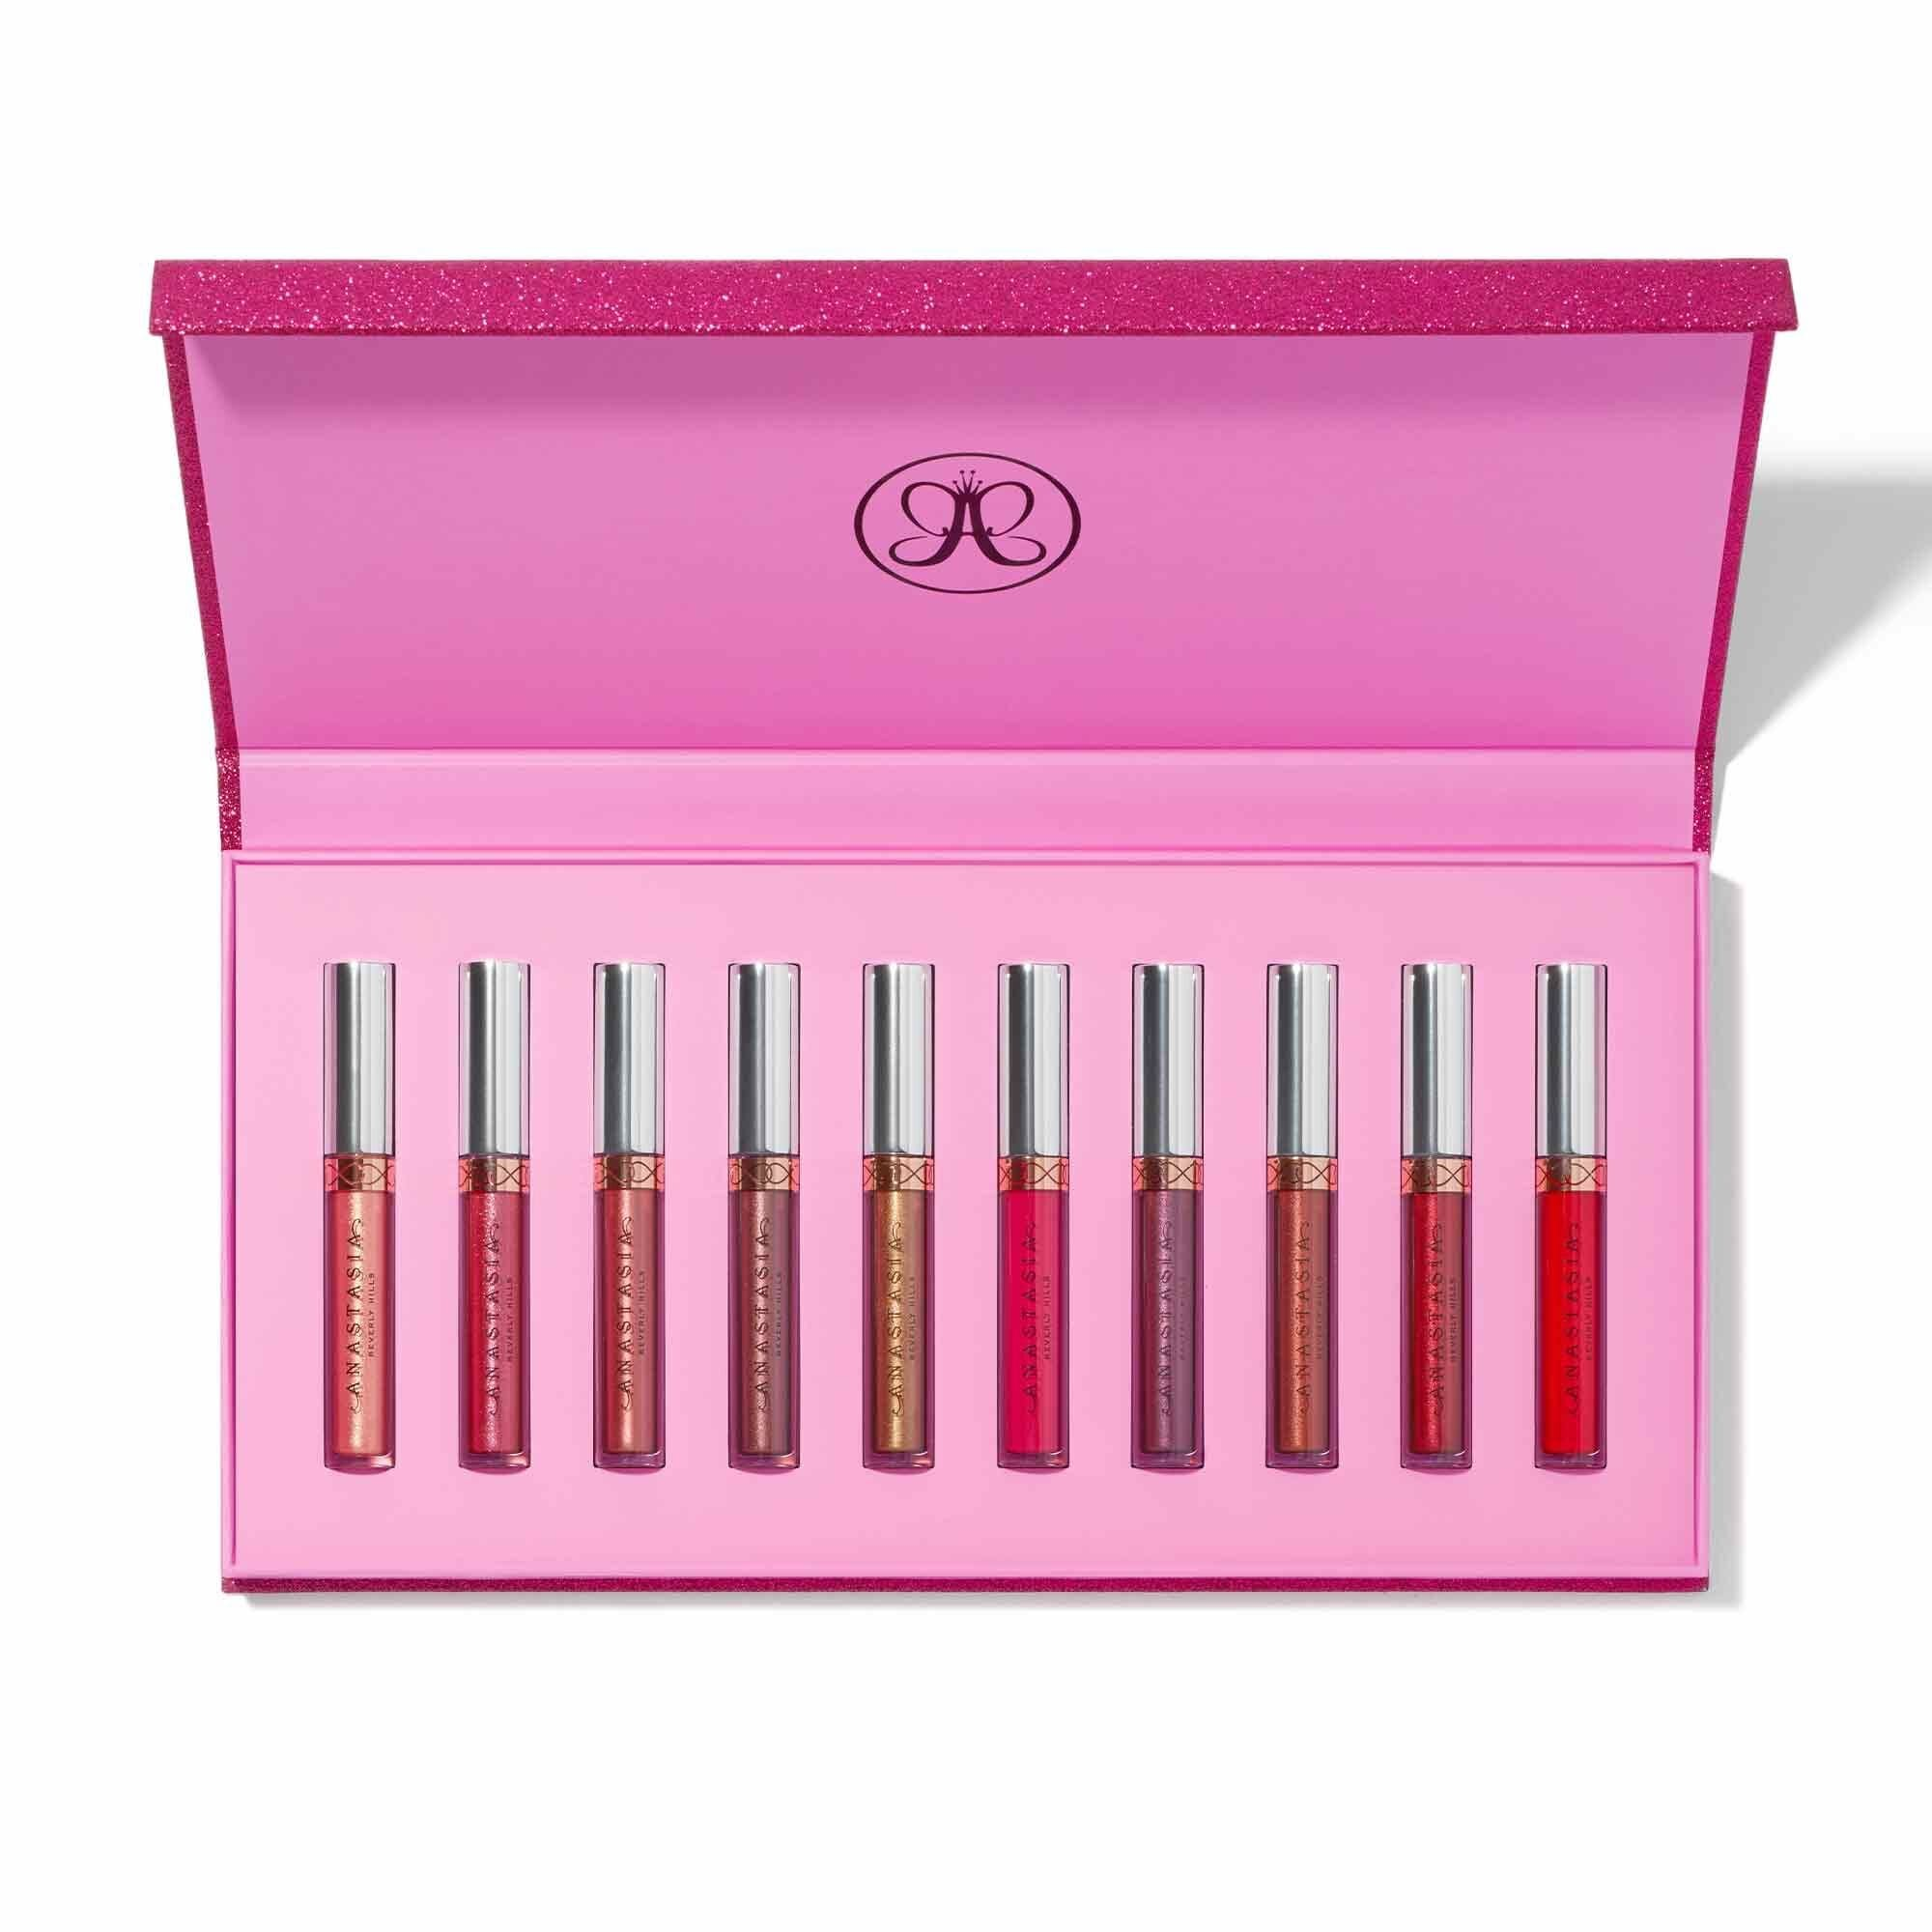 Anastasia Beverly Hills Holiday Liquid Lipstick Set